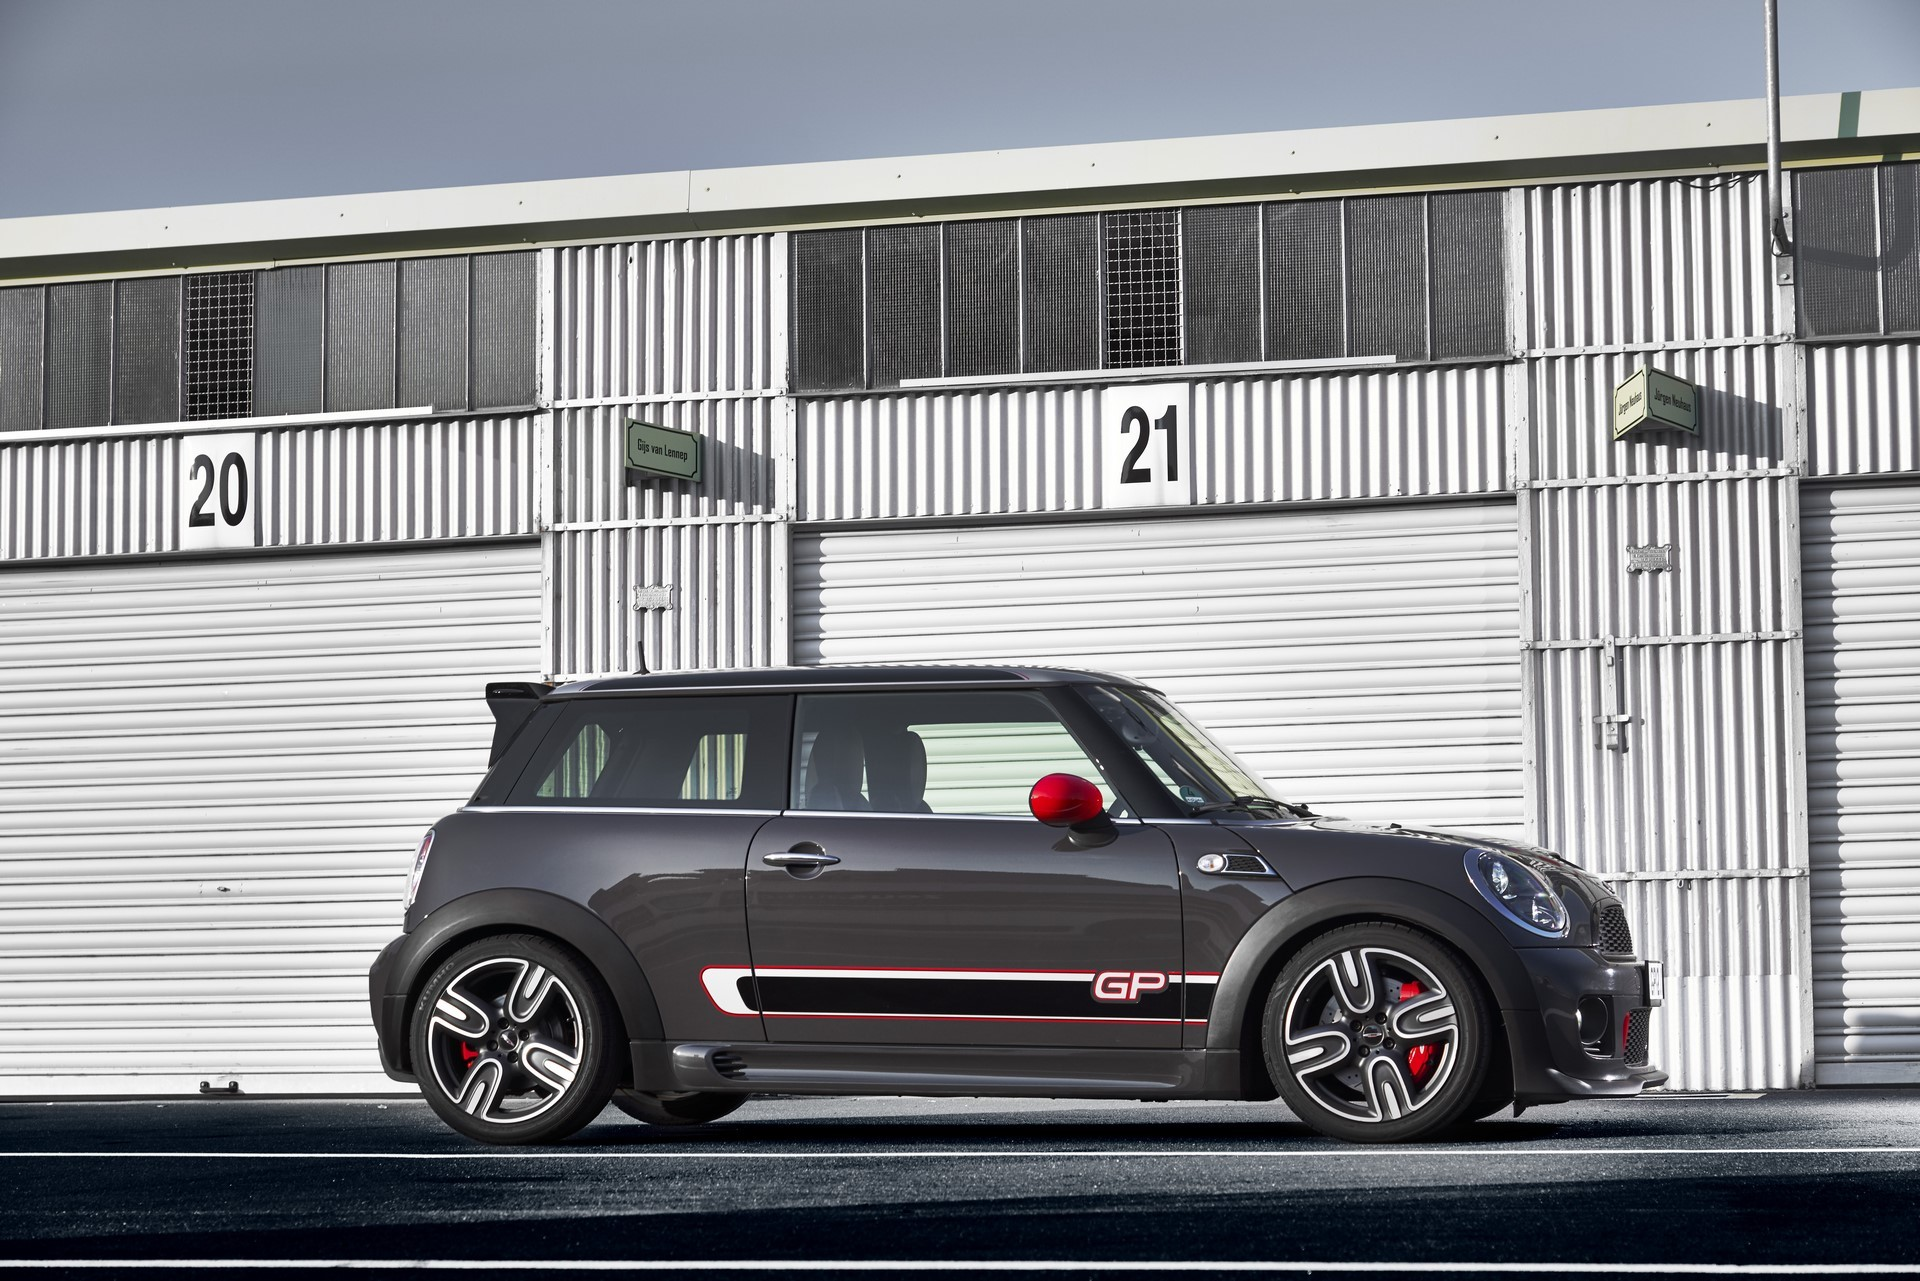 MINI-John-Cooper-Works-GP-Prototype-80